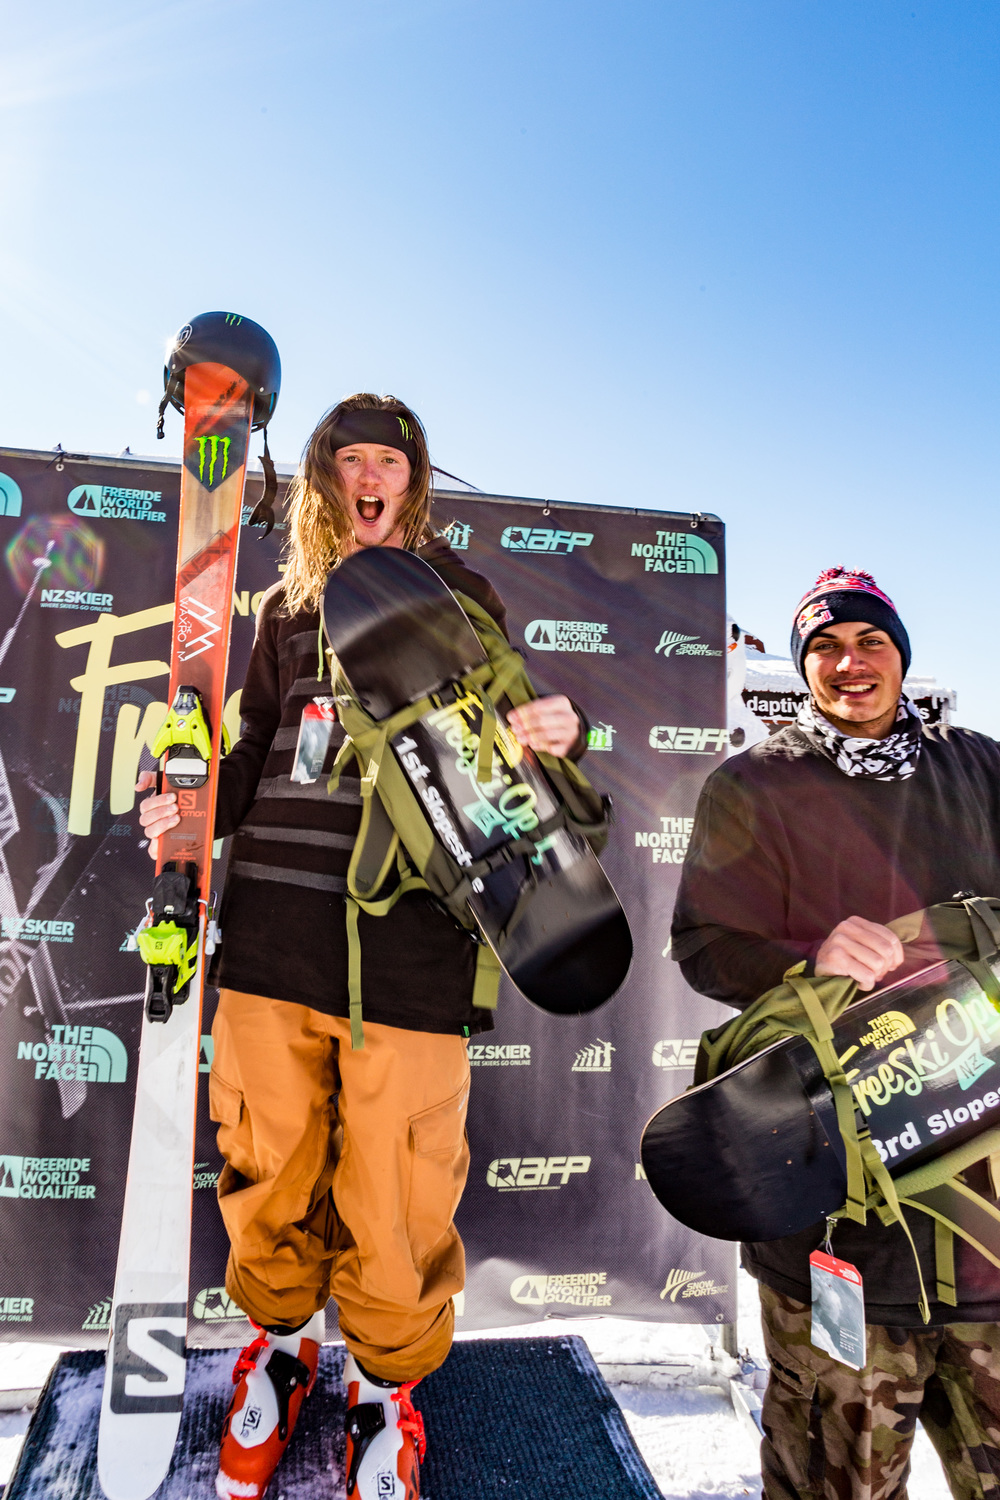 Slopestyle_Awards-6.jpg